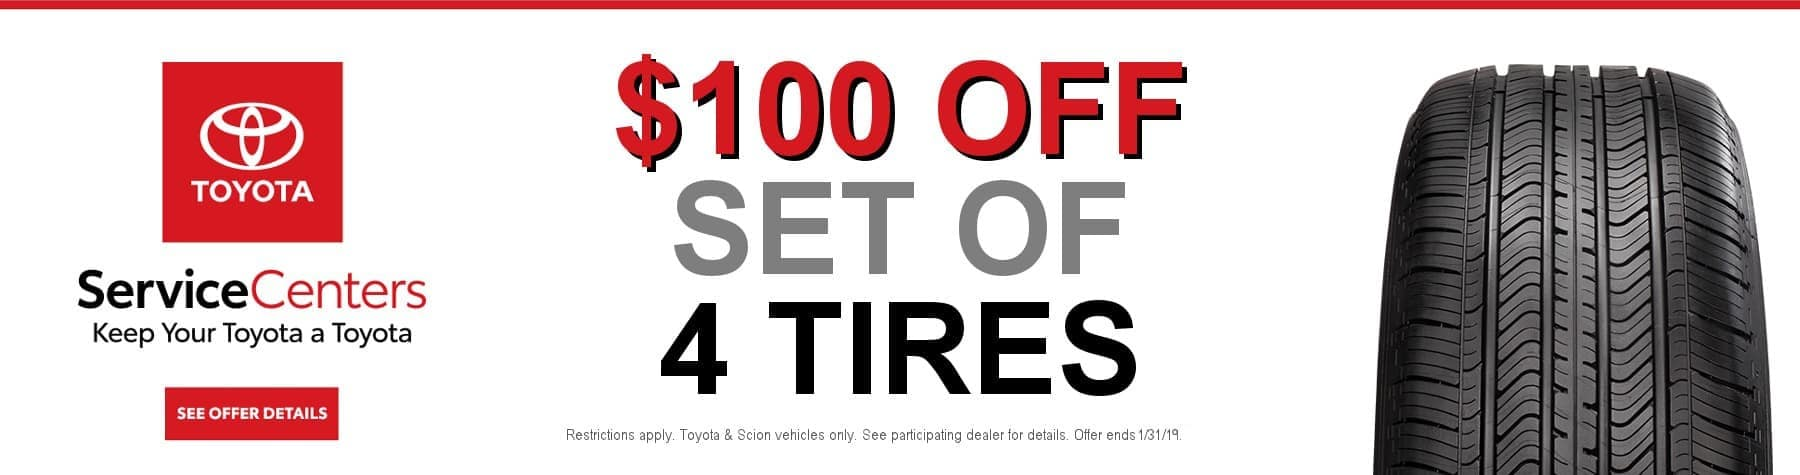 toyota service - tire special